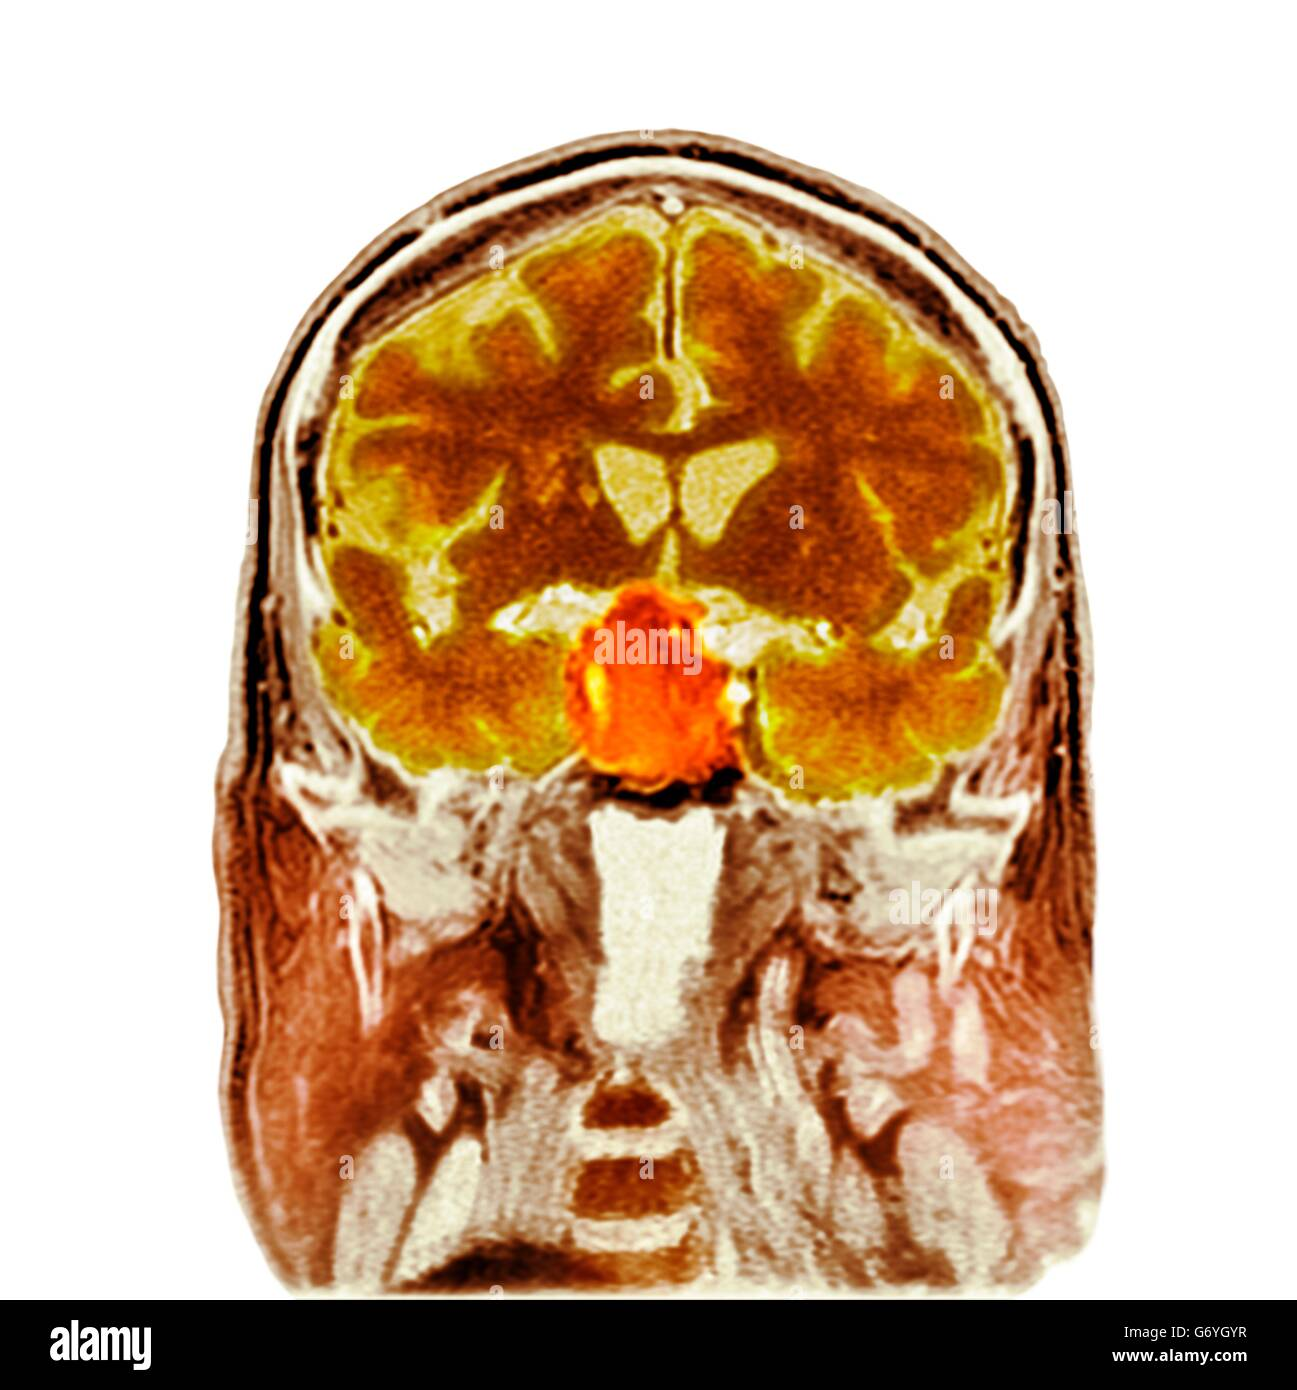 Pituitary tumour. Coloured computed tomography (CT) scan of a section through the brain of an 84-year-old male patient - Stock Image